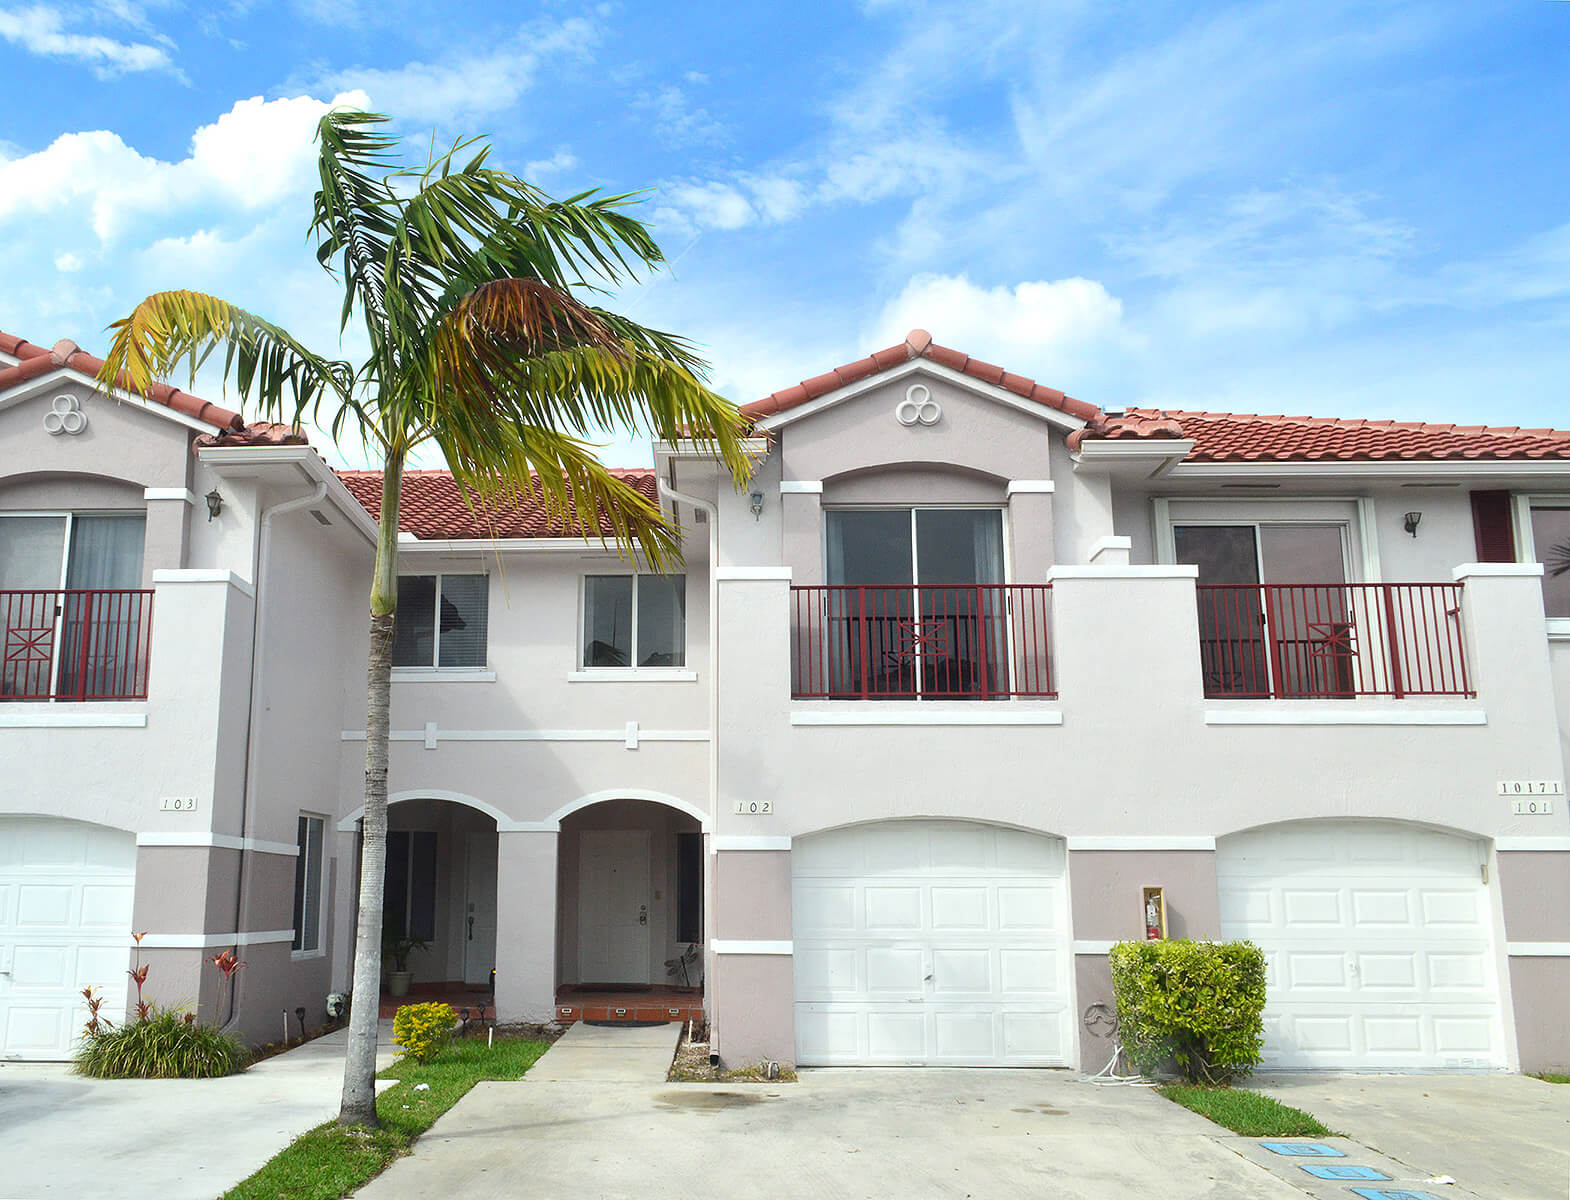 10171-SW-154-Circle-Ct-Miami-FL-33196-1-House-Front.jpg